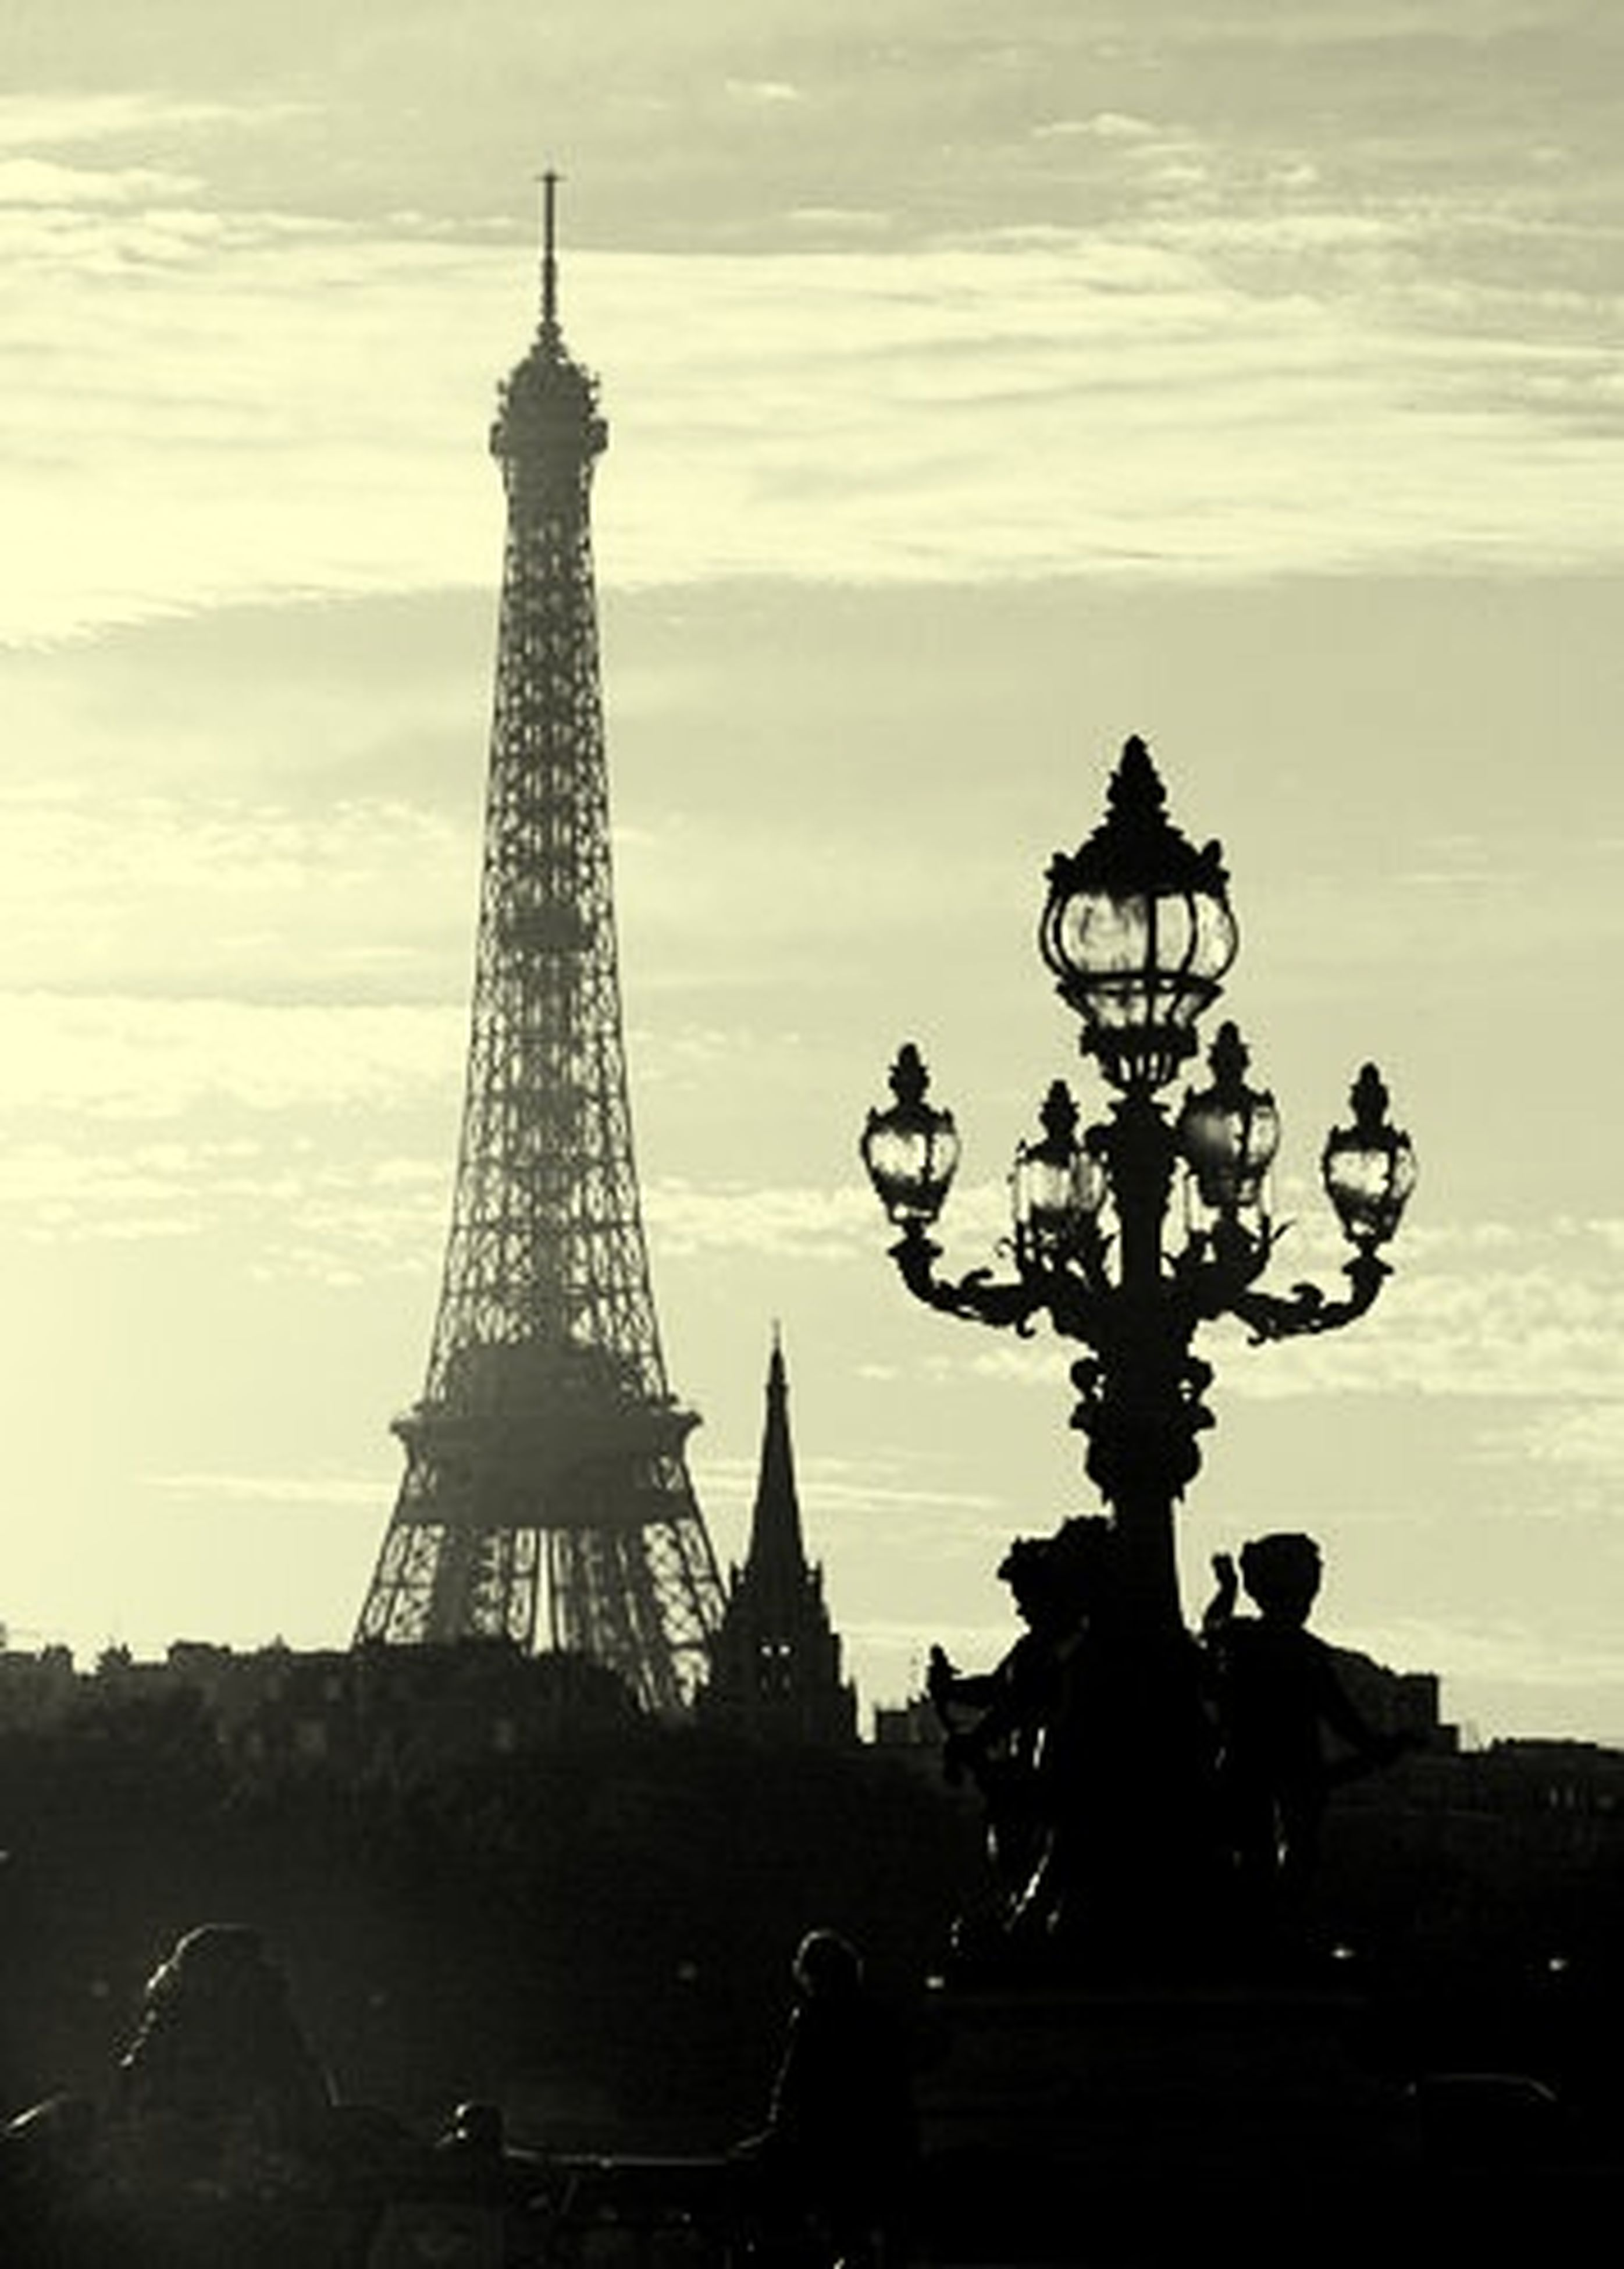 architecture, built structure, famous place, international landmark, tall - high, tower, tourism, travel destinations, eiffel tower, building exterior, capital cities, sky, travel, city, communications tower, culture, sunset, spire, silhouette, low angle view